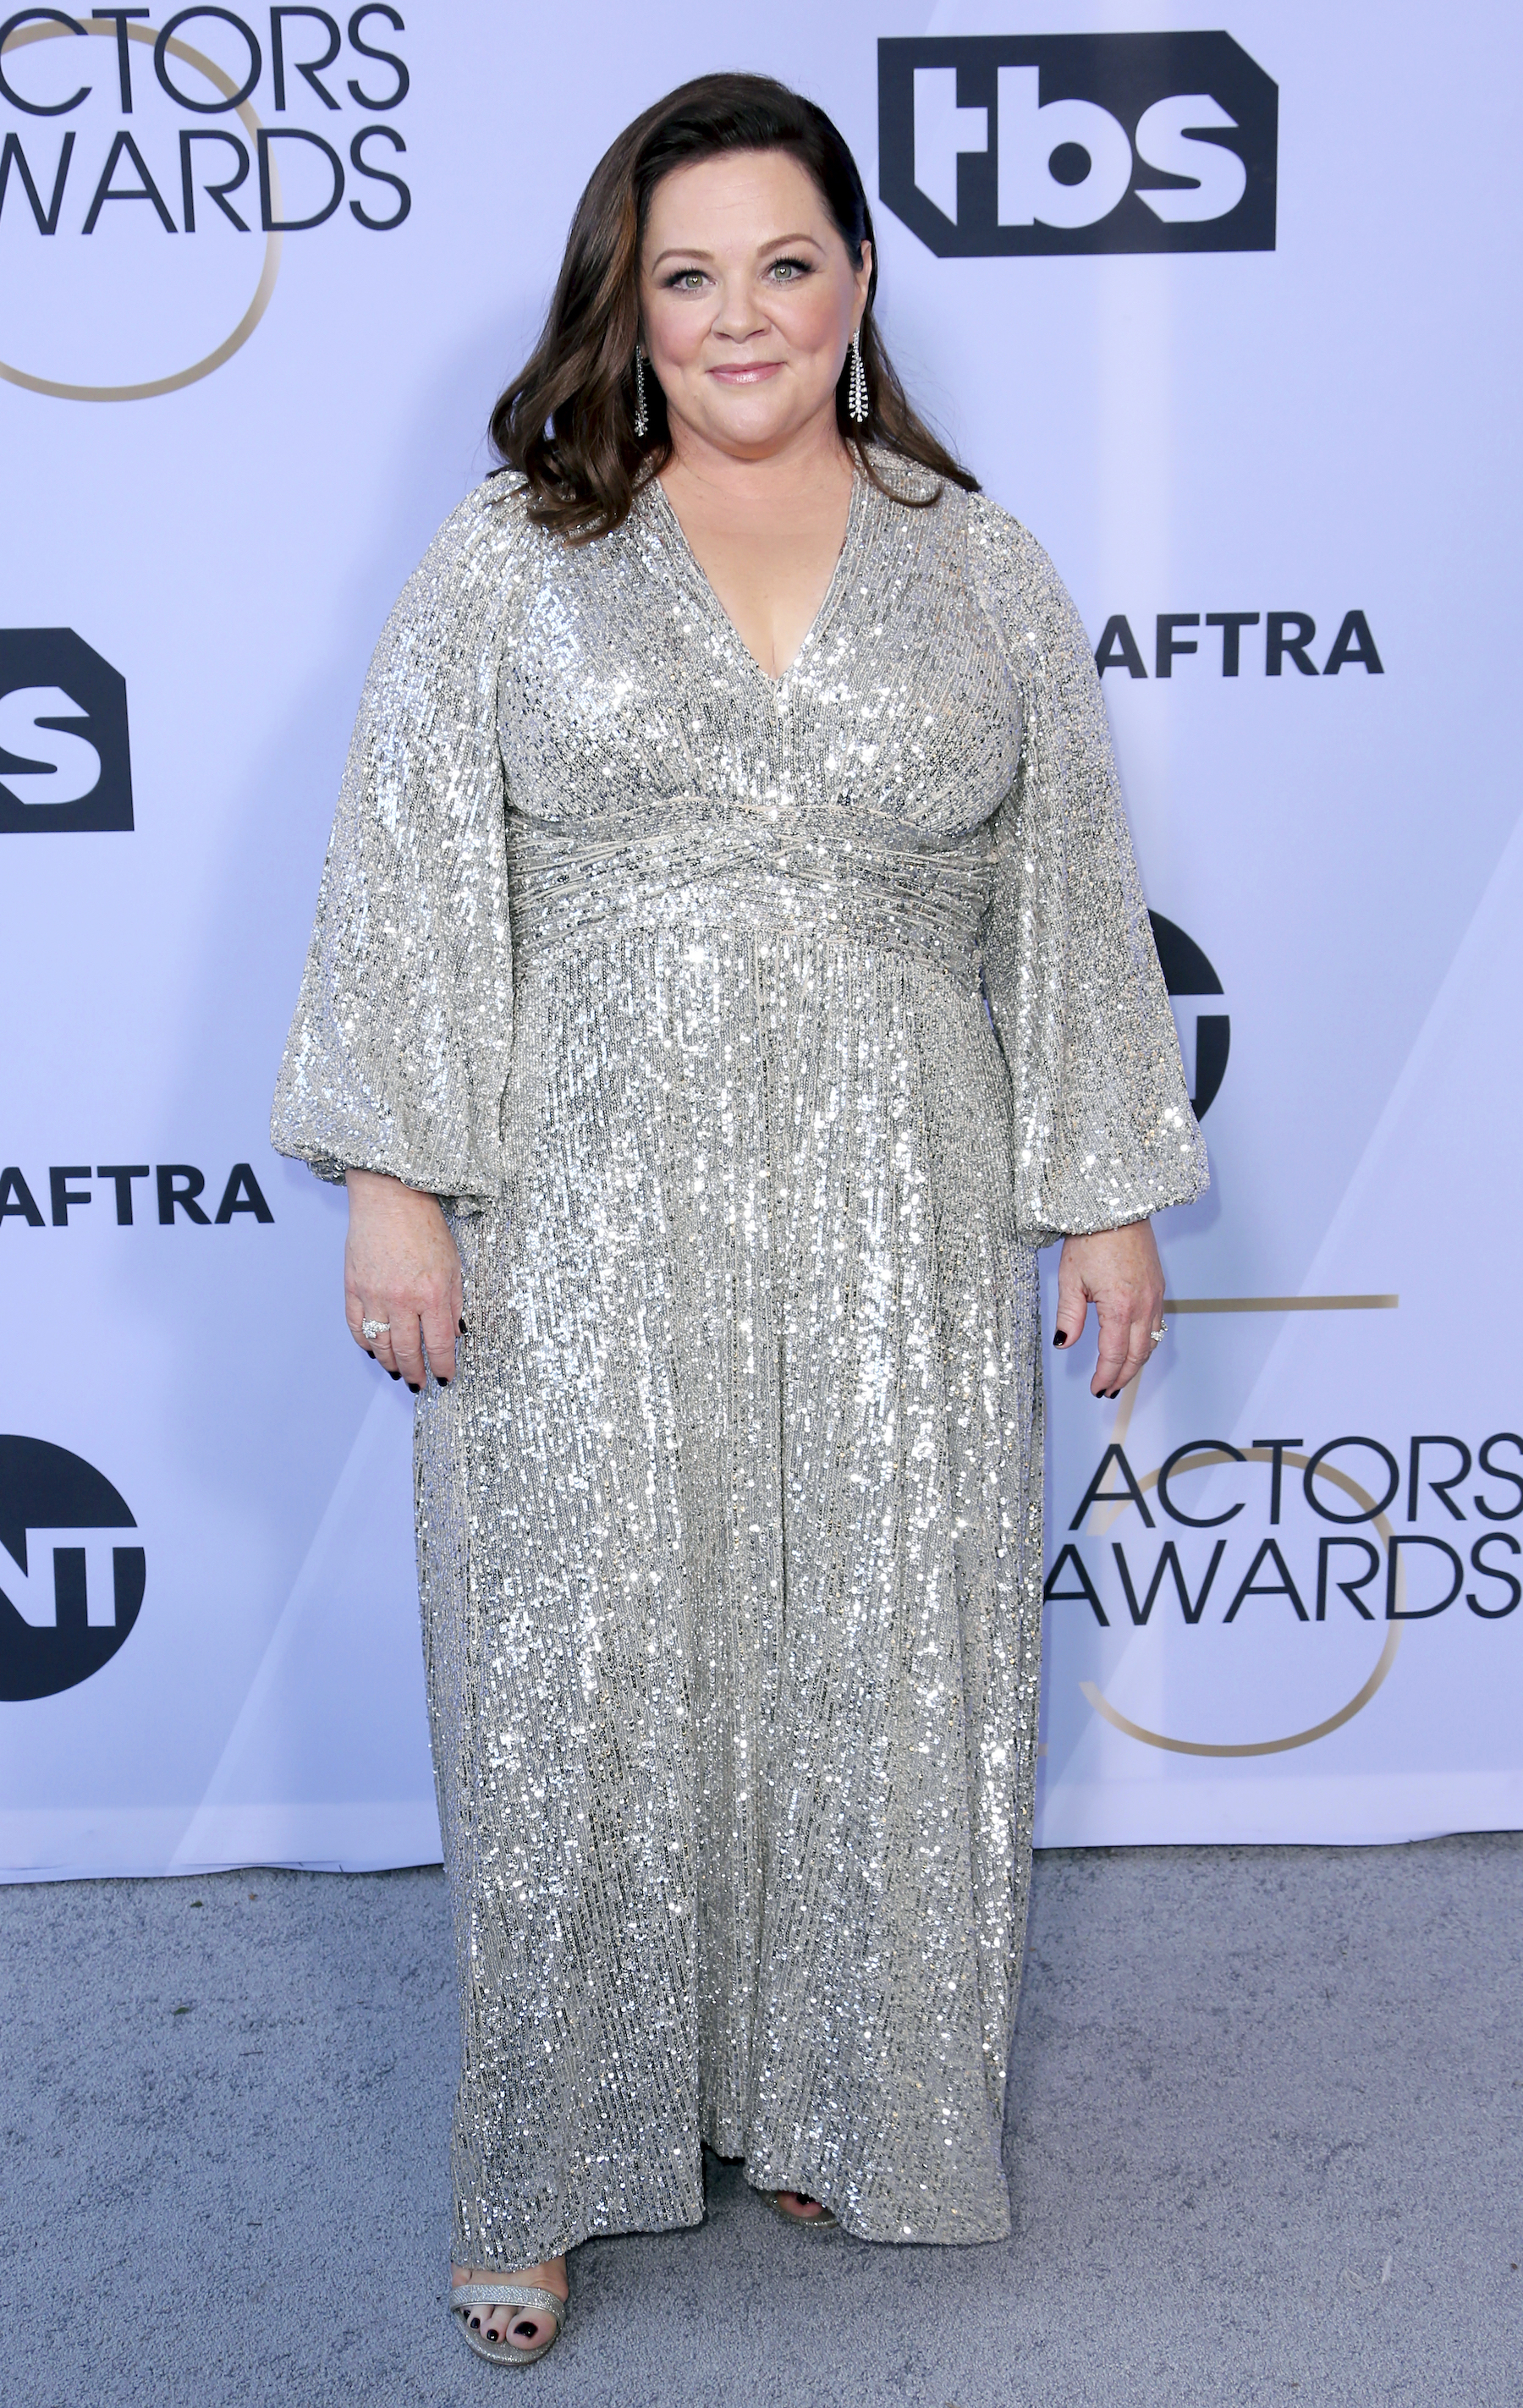 "<div class=""meta image-caption""><div class=""origin-logo origin-image ap""><span>AP</span></div><span class=""caption-text"">Melissa McCarthy arrives at the 25th annual Screen Actors Guild Awards at the Shrine Auditorium & Expo Hall on Sunday, Jan. 27, 2019, in Los Angeles. (Willy Sanjuan/Invision/AP)</span></div>"